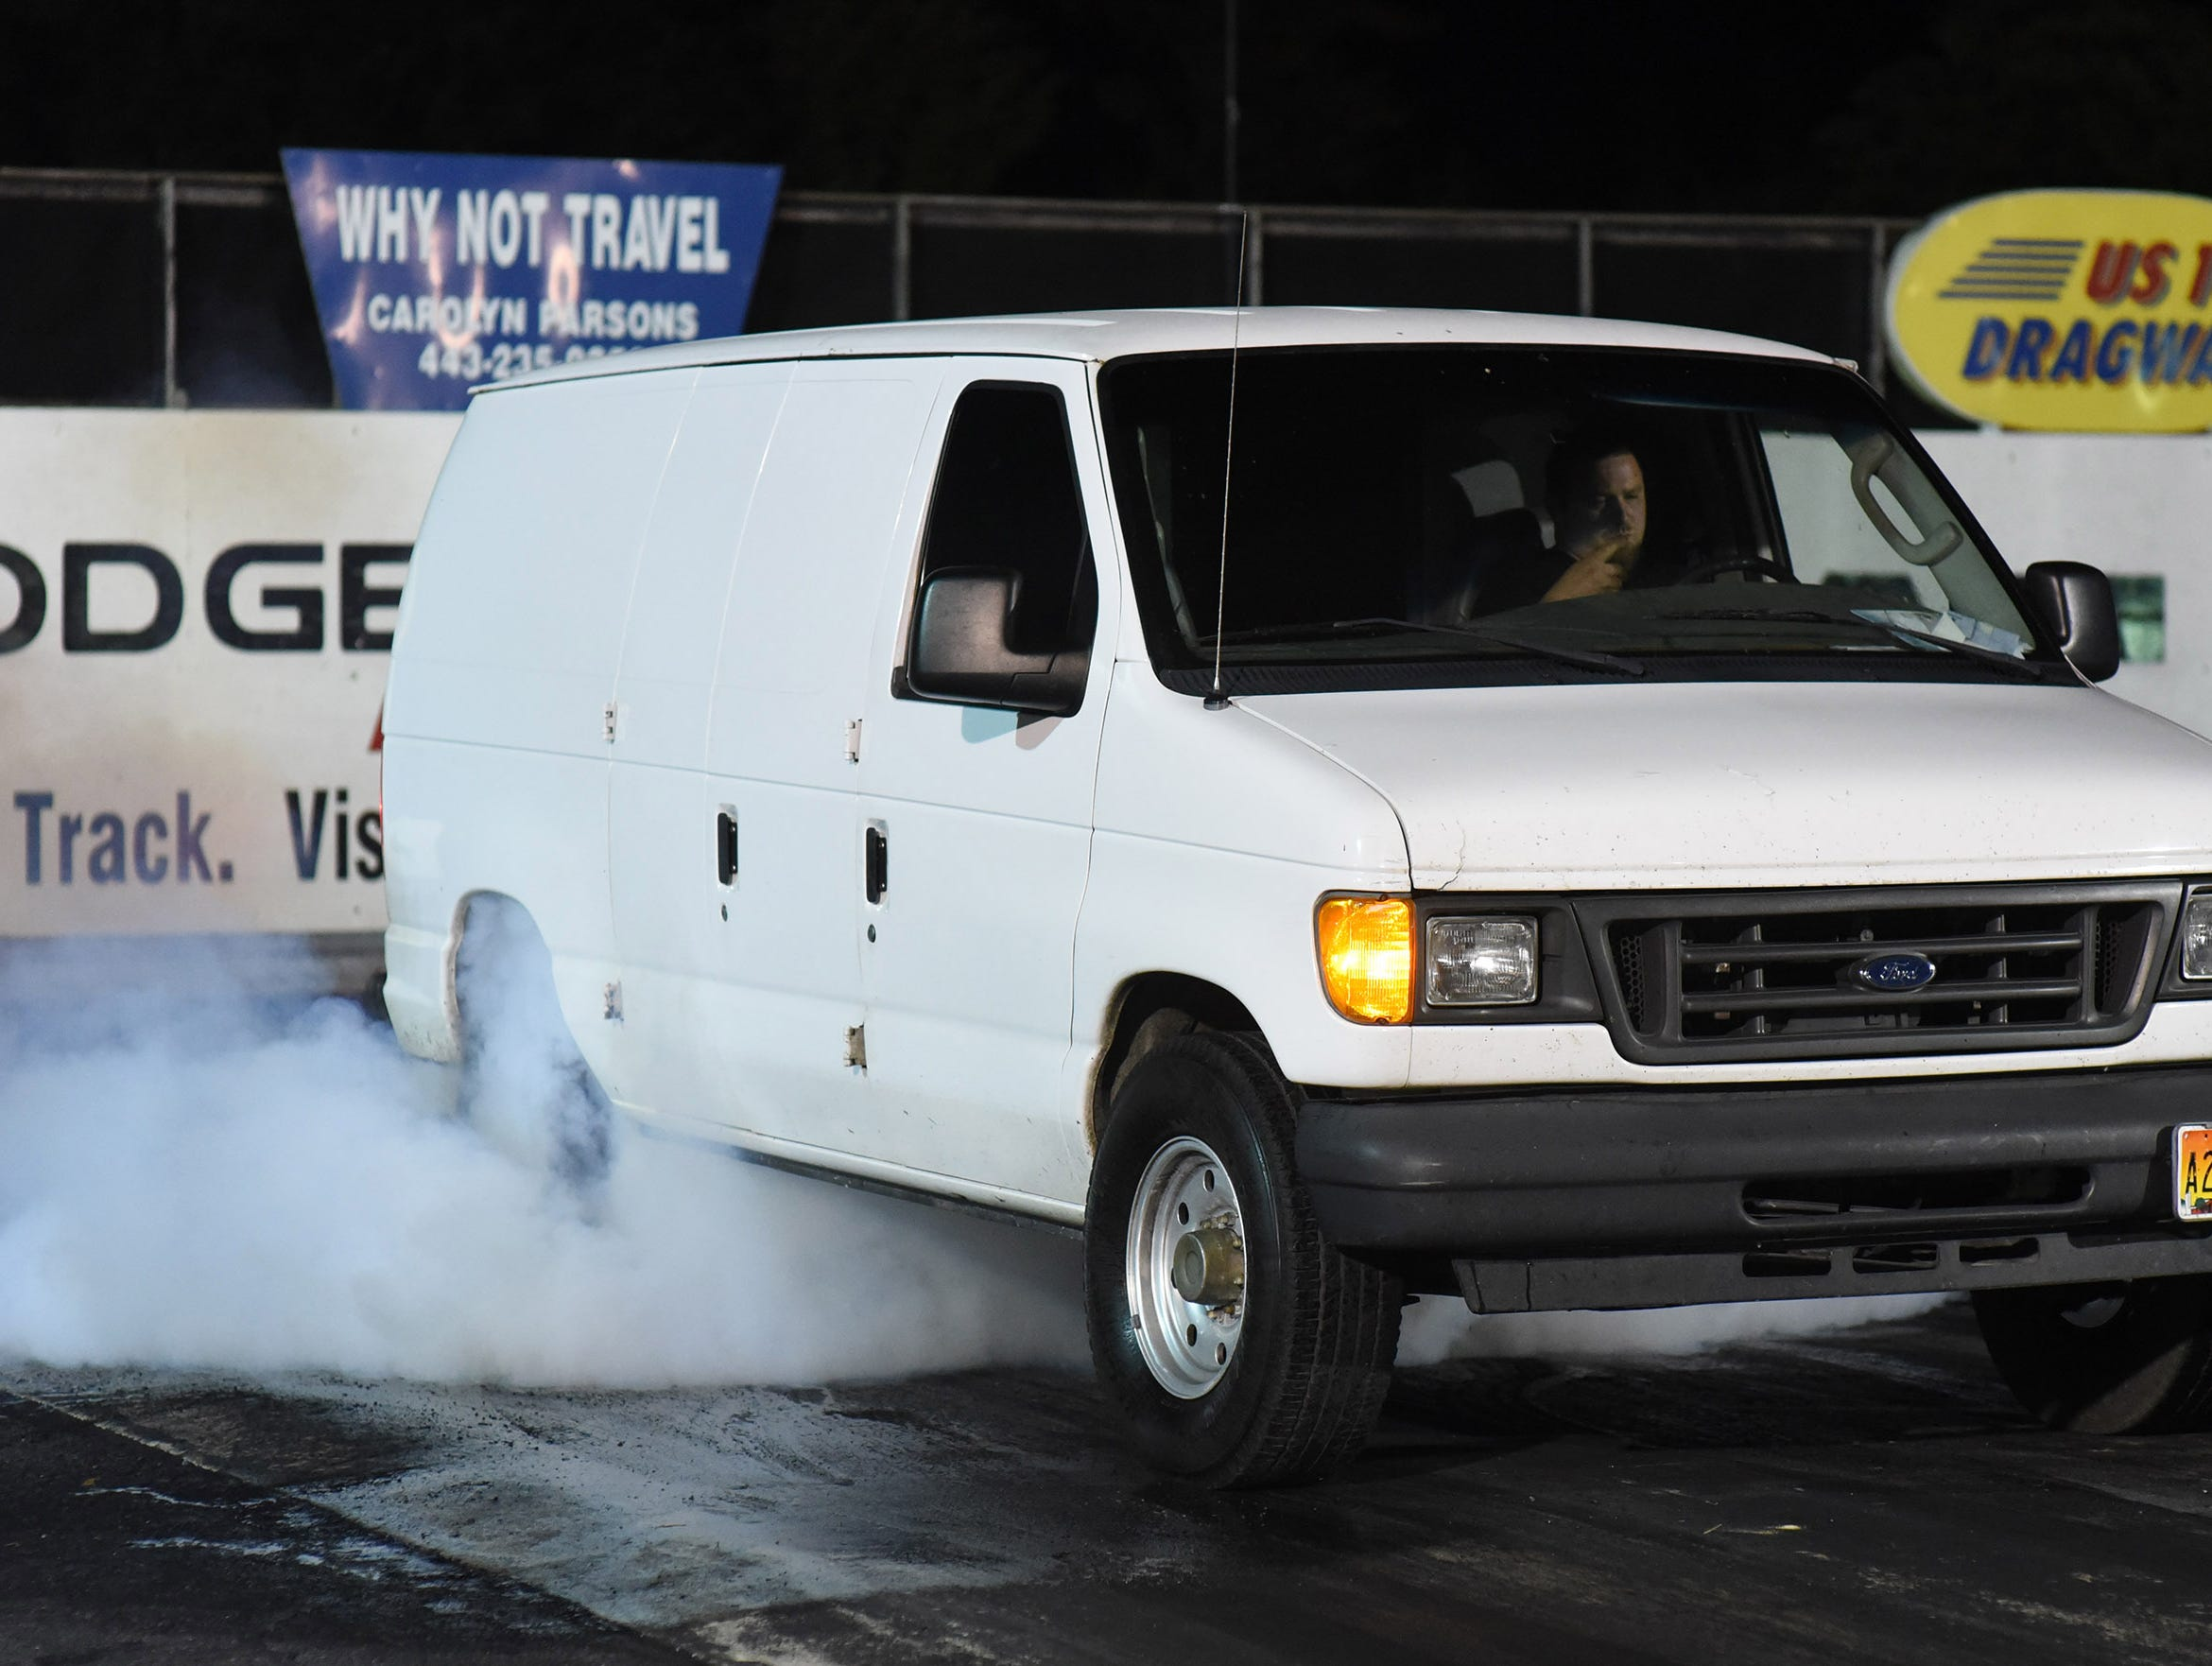 A participant competes in the first Endless Summer Cruisin' 2018 Burnout Contest at the U.S. 13 Dragway in Delmar. Billy McLamb of Mardela Springs was the winner of the contest and $500 sponsored by Special Event Productions Inc. (Photo by Todd Dudek for The Daily Times)